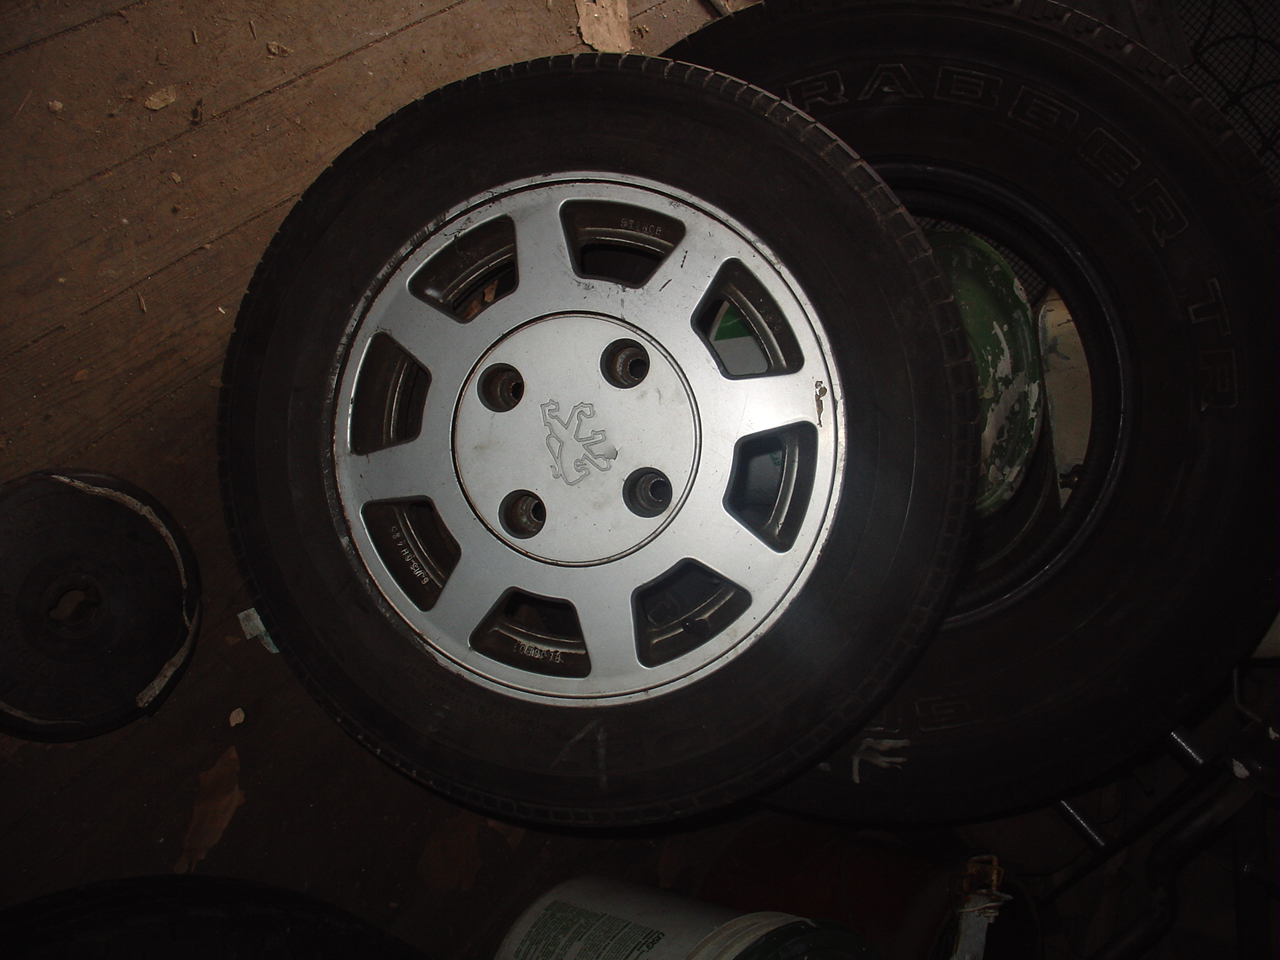 Peugeot 505 Rims For Sale For Sale Want Ads Peugeot Enthusiasts Group